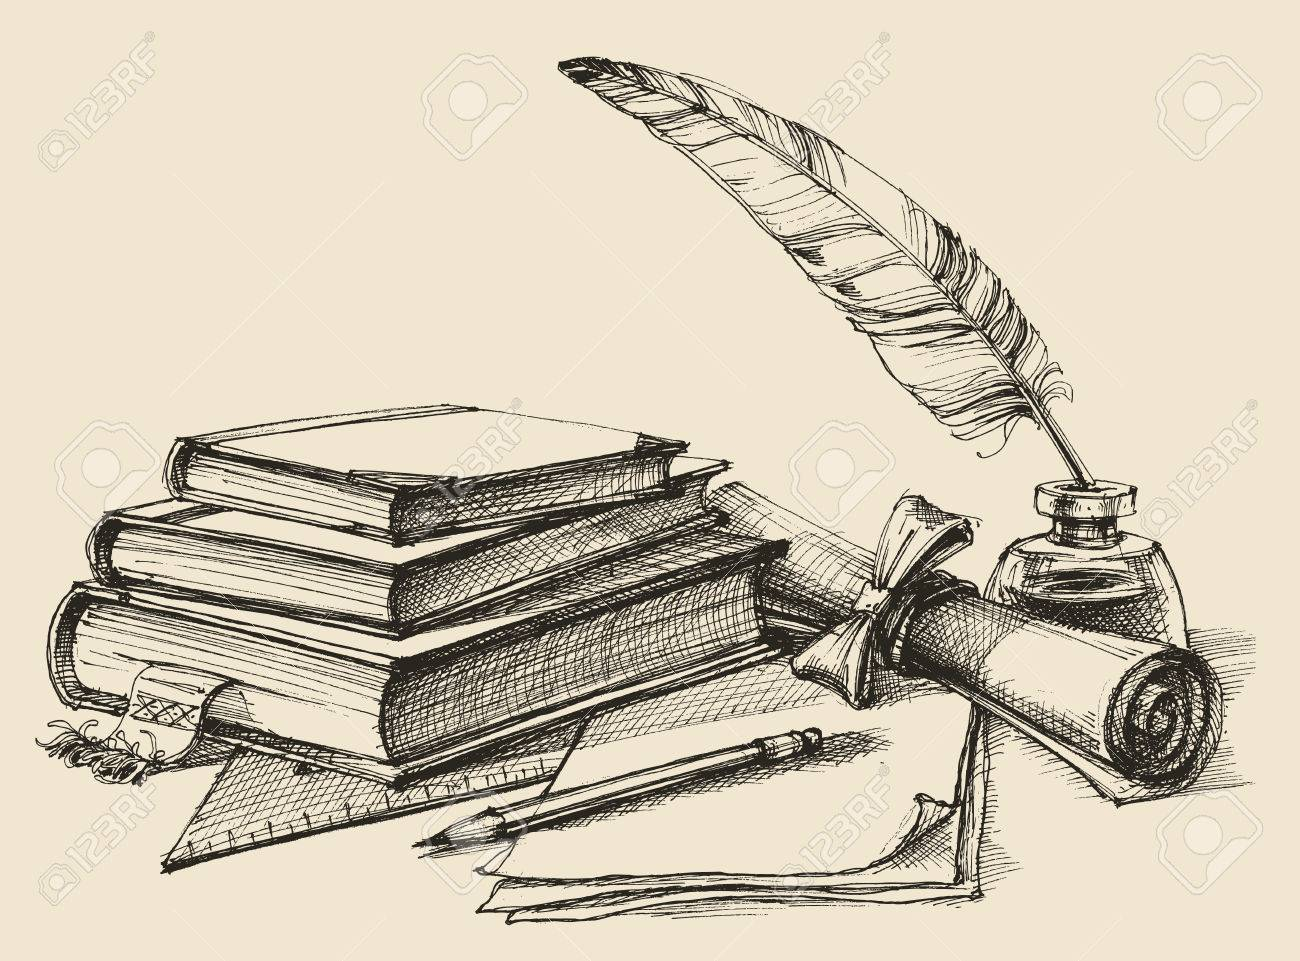 Stack of books, paper, pencil, scroll, quill pen and ink. Diploma, certificate, school, study, writing, literature, library design in vintage style - 69726051